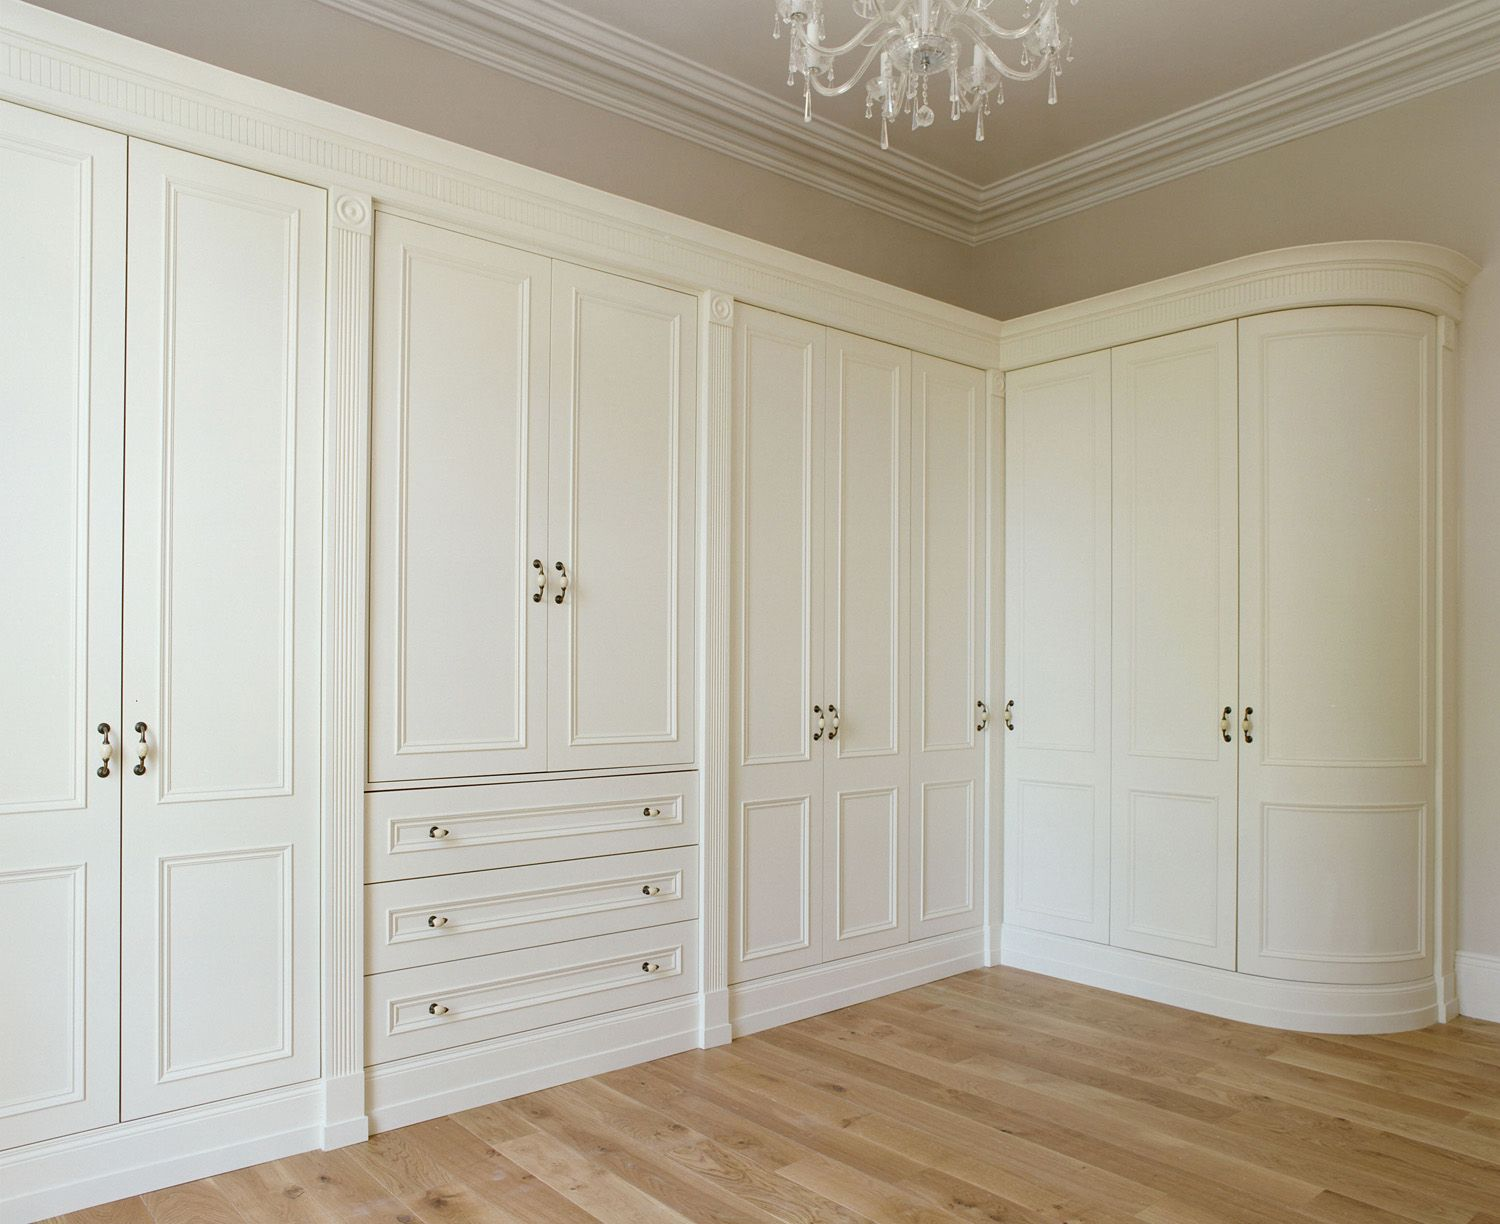 Newcastle Design Bedroom Furniture Fitted Wardrobes Bedroom Furniture Dublin Ireland